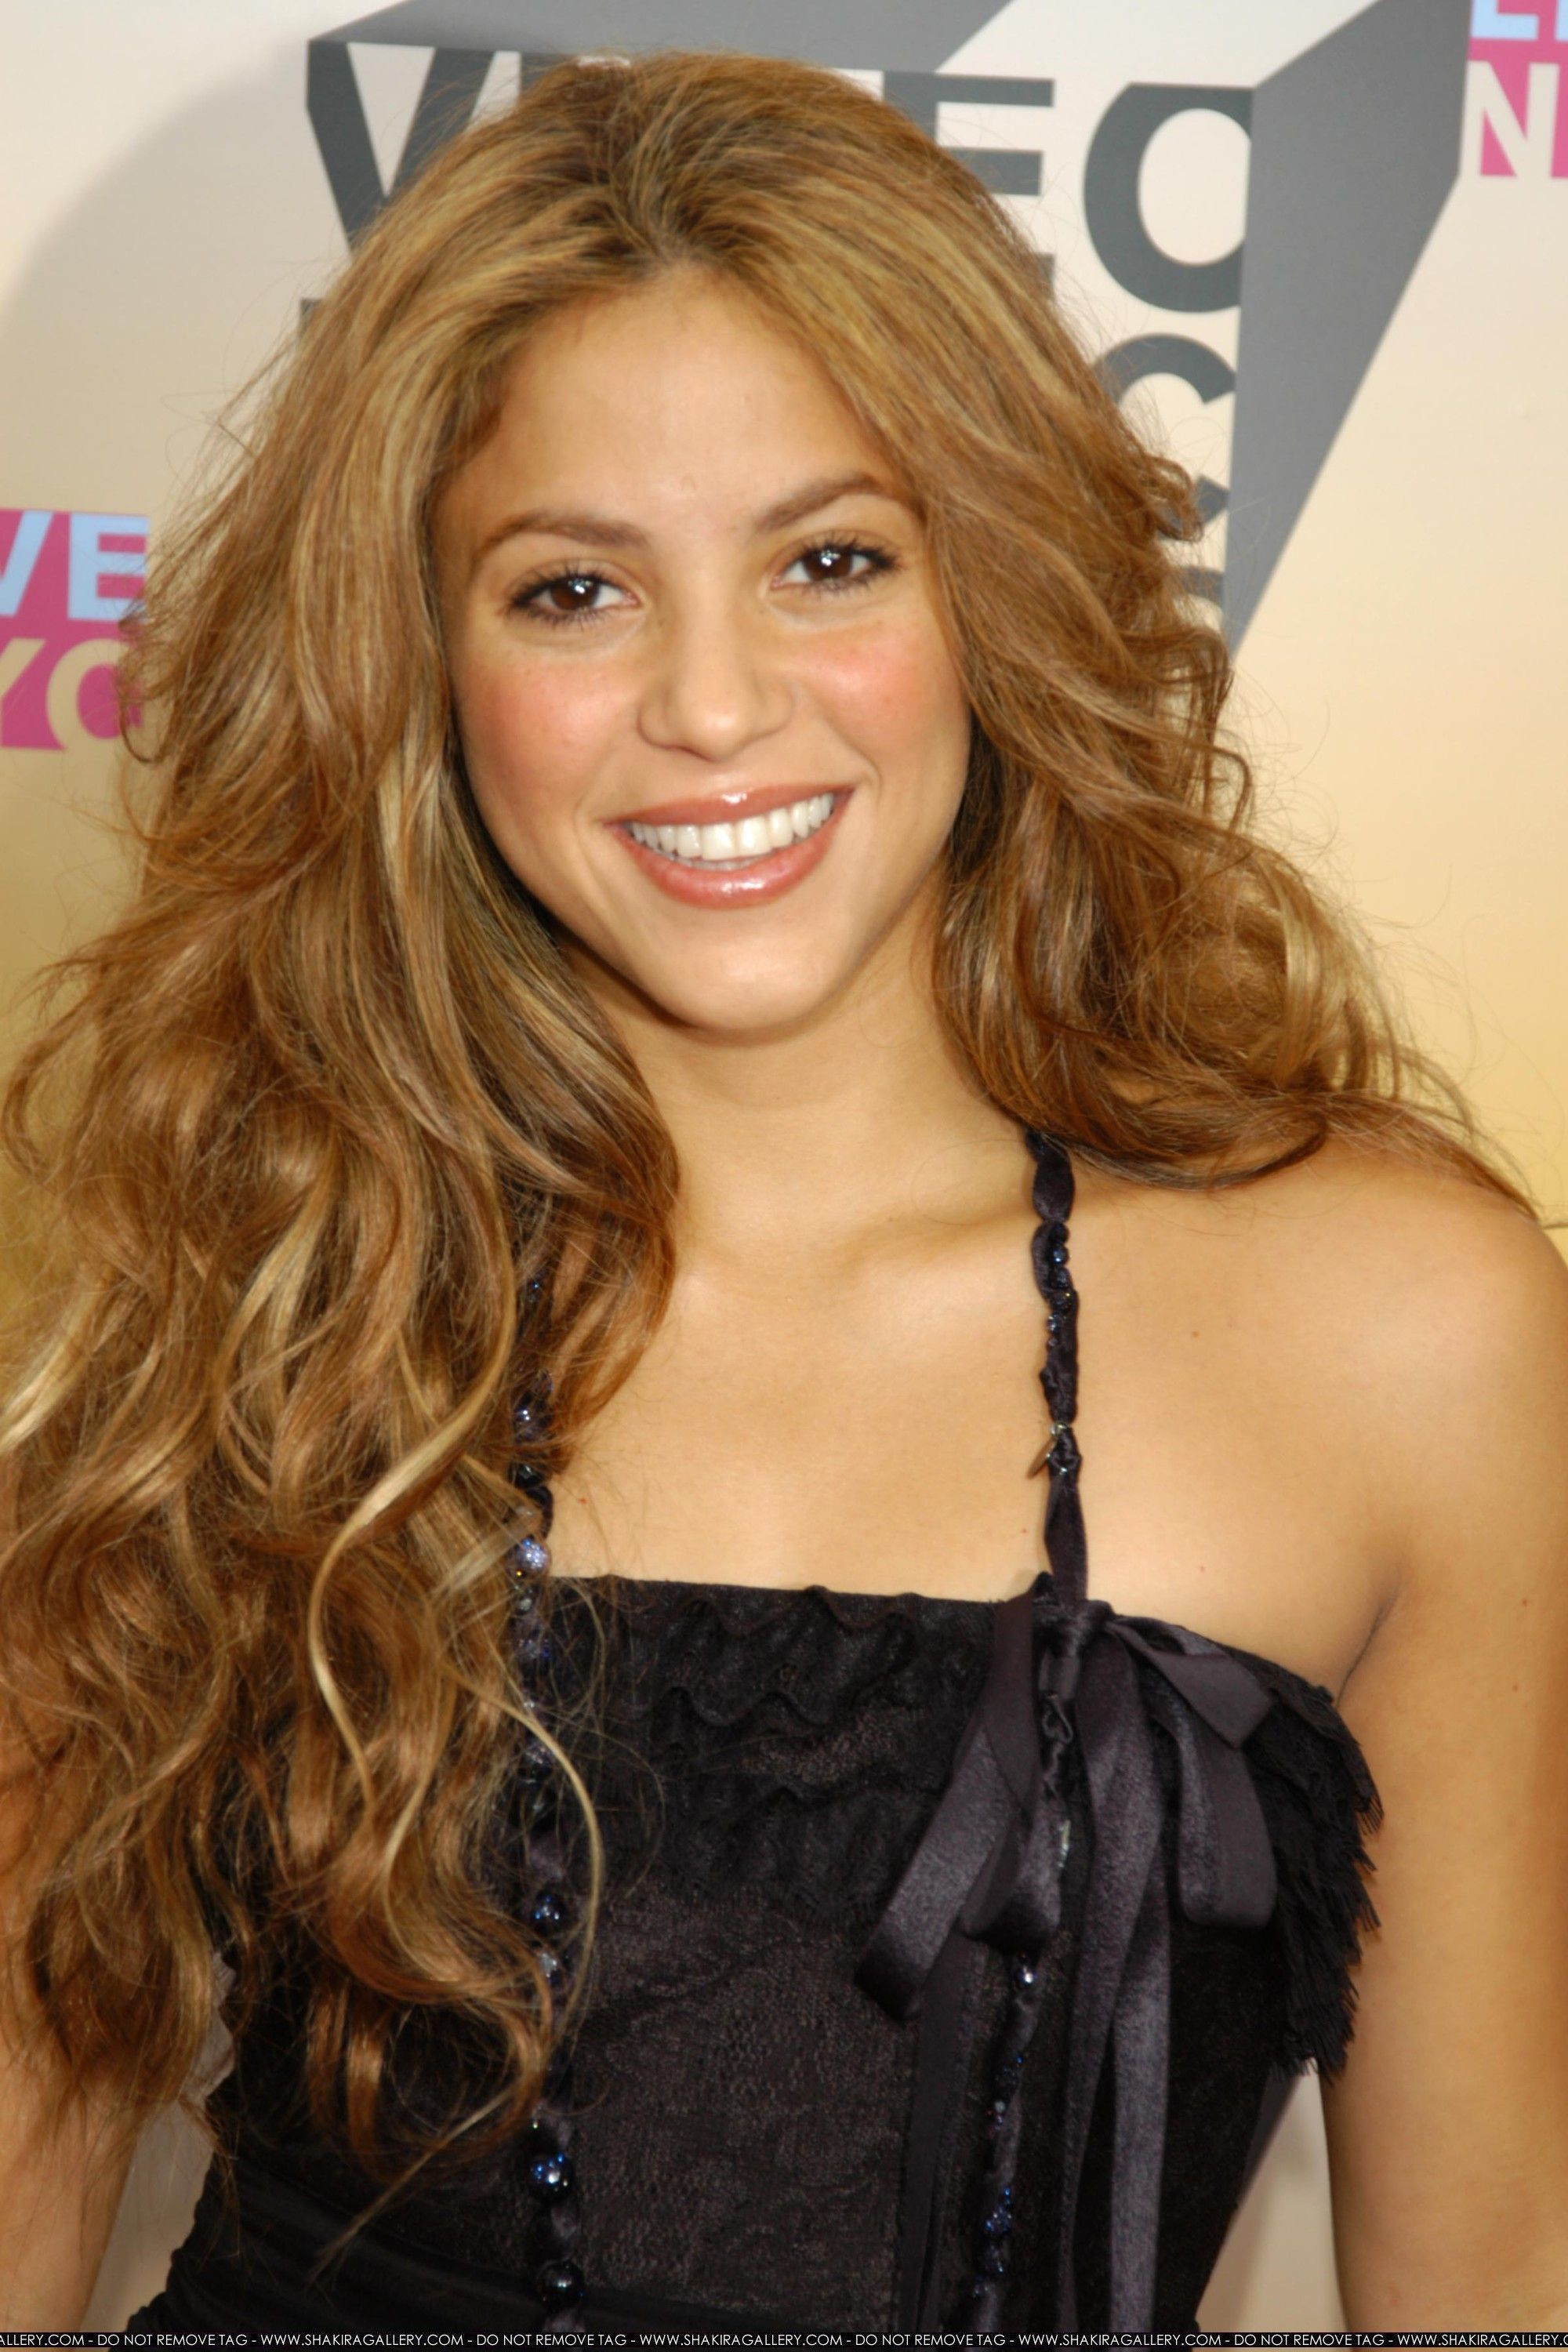 Pin By Nicole Taylor On I Wanna Be Blonde Shakira Hair